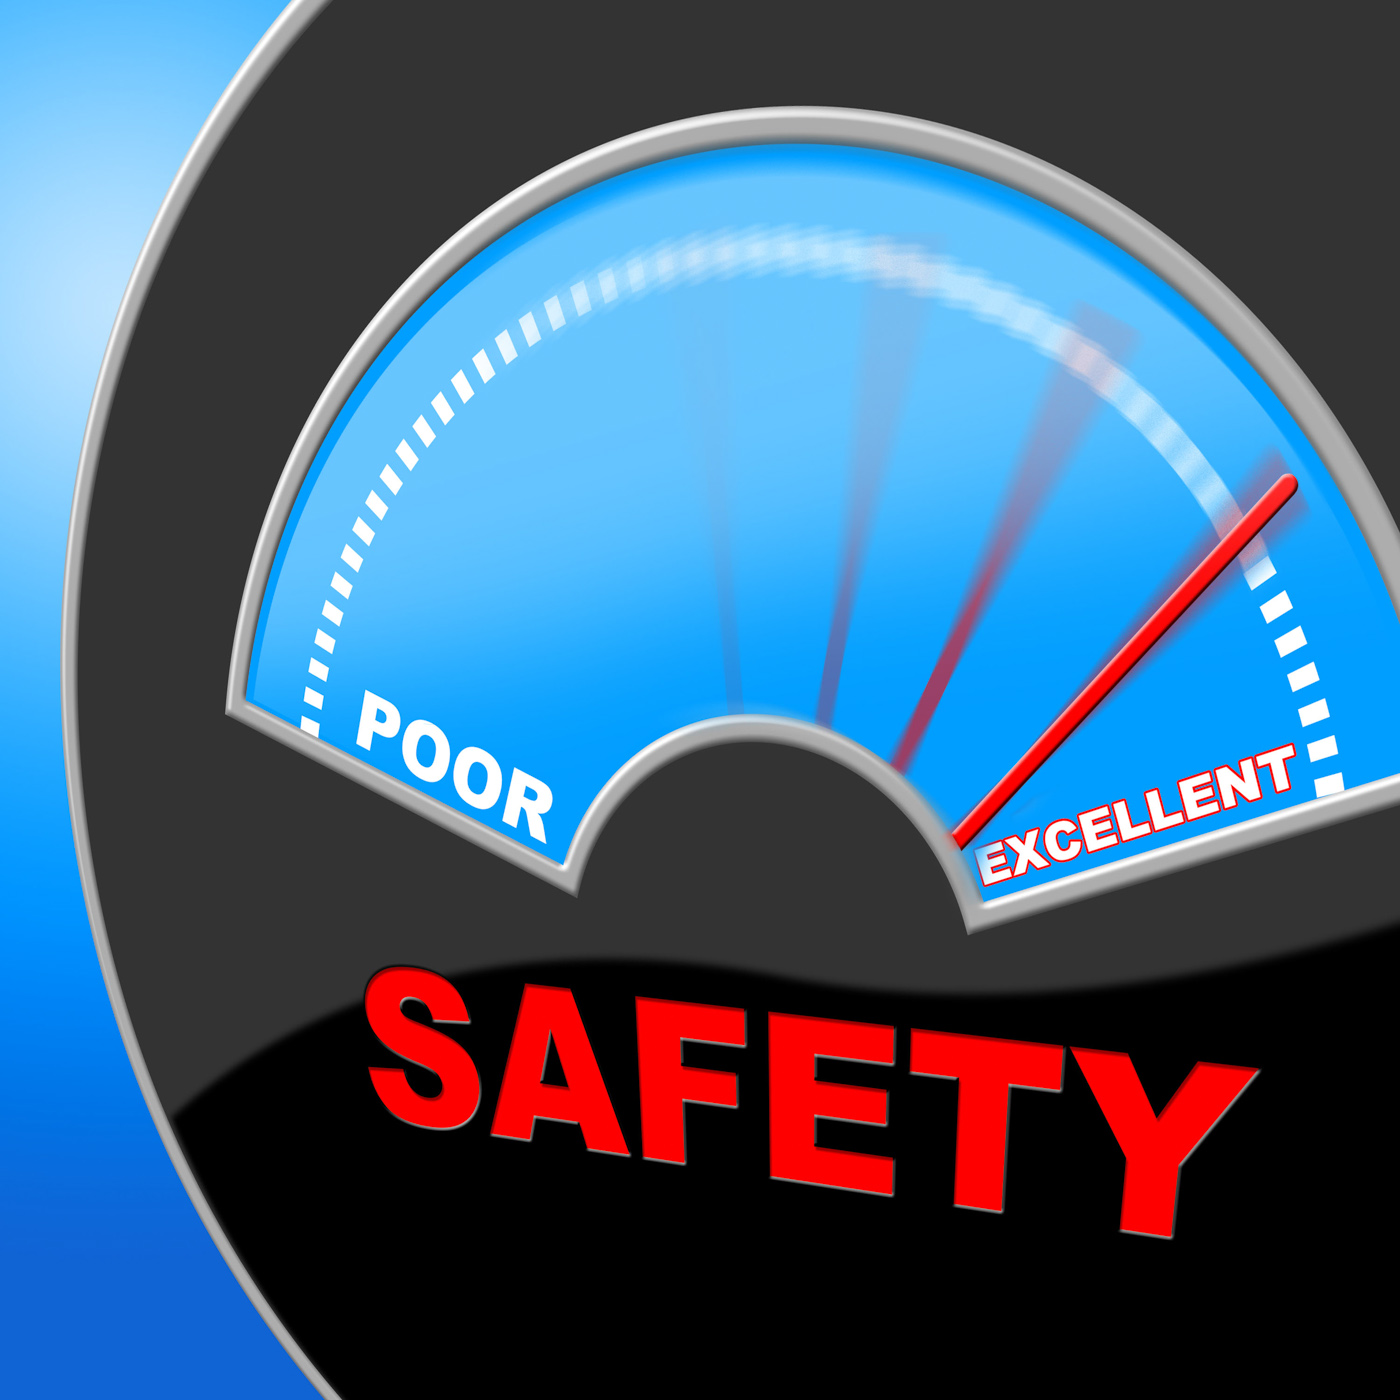 Excellent safety indicates quality excellency and careful photo